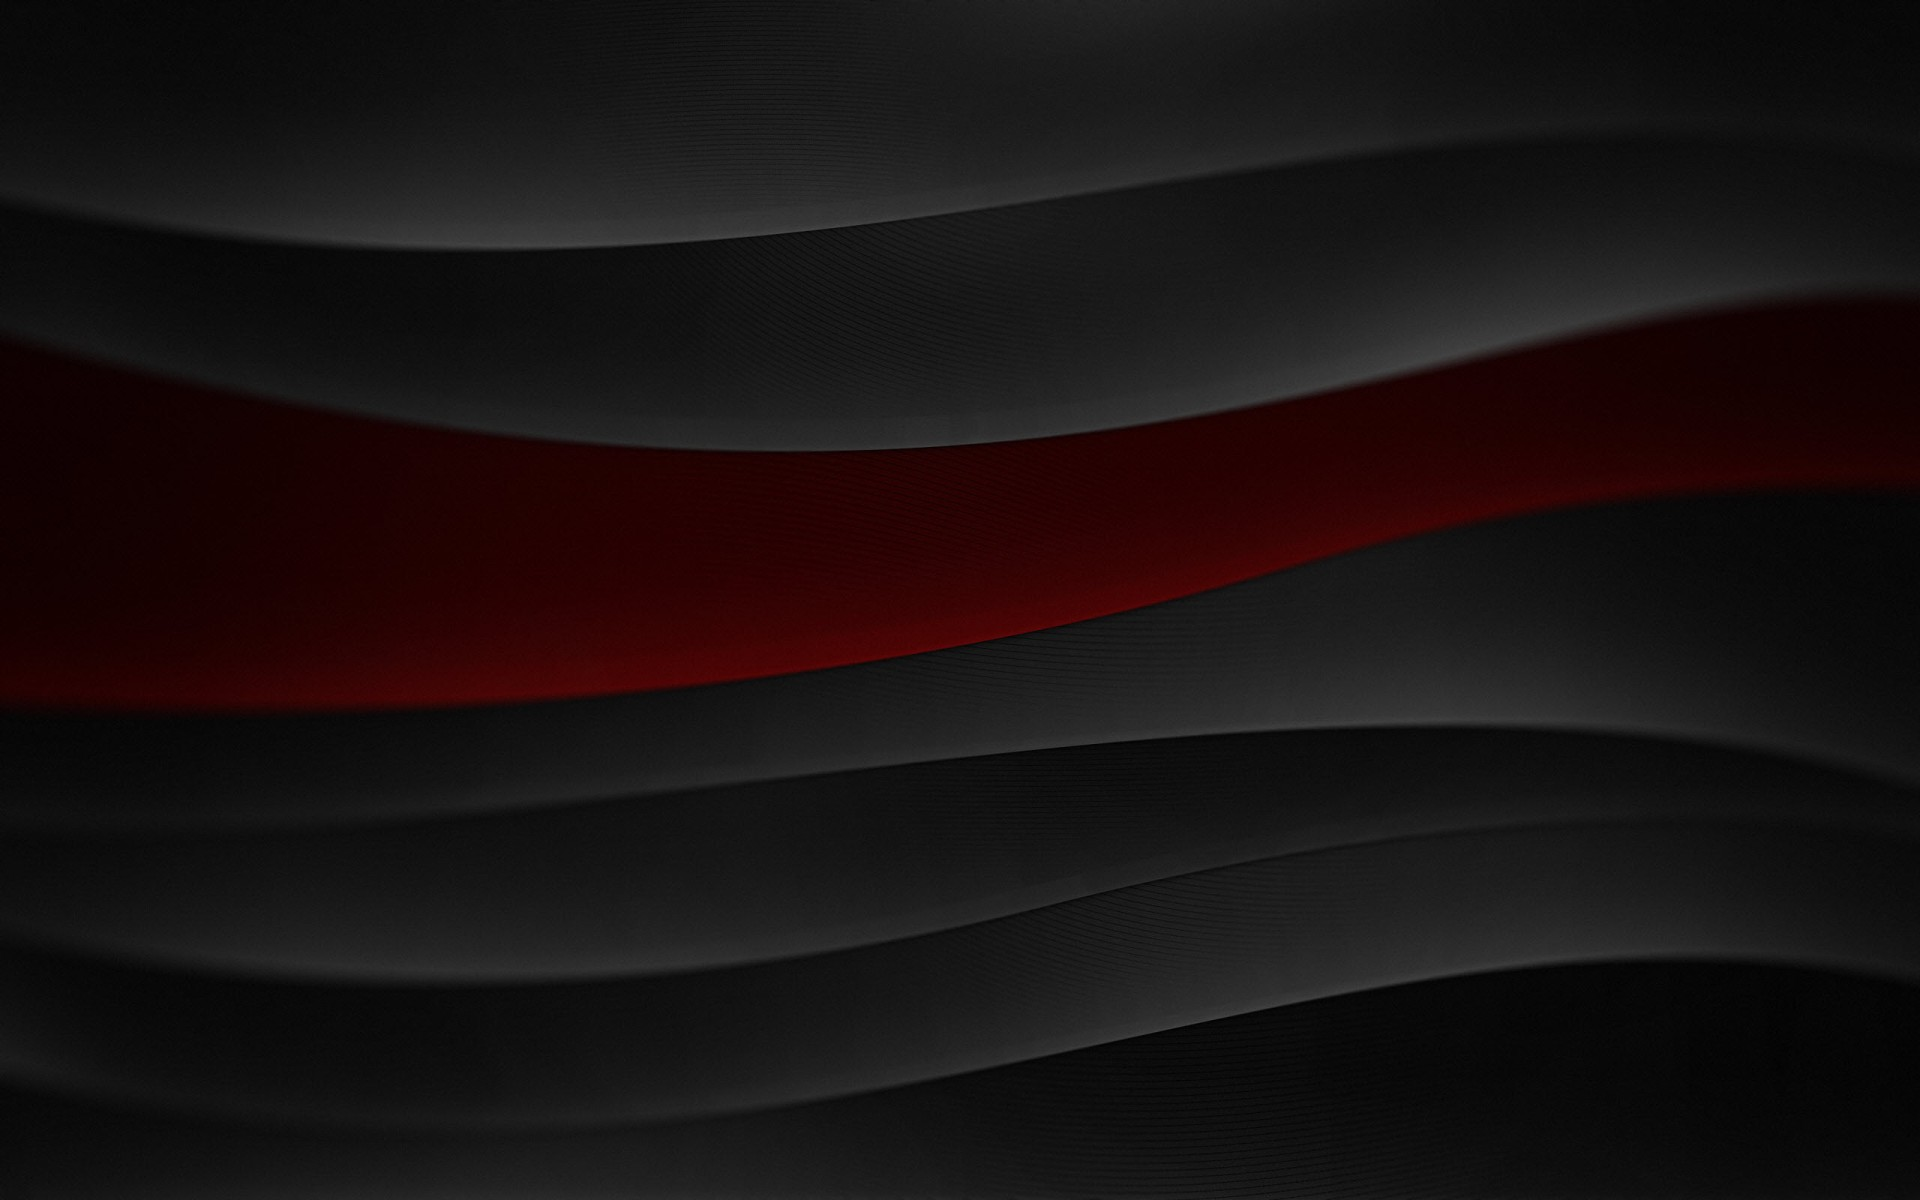 Black And Red Backgrounds 1920x1200